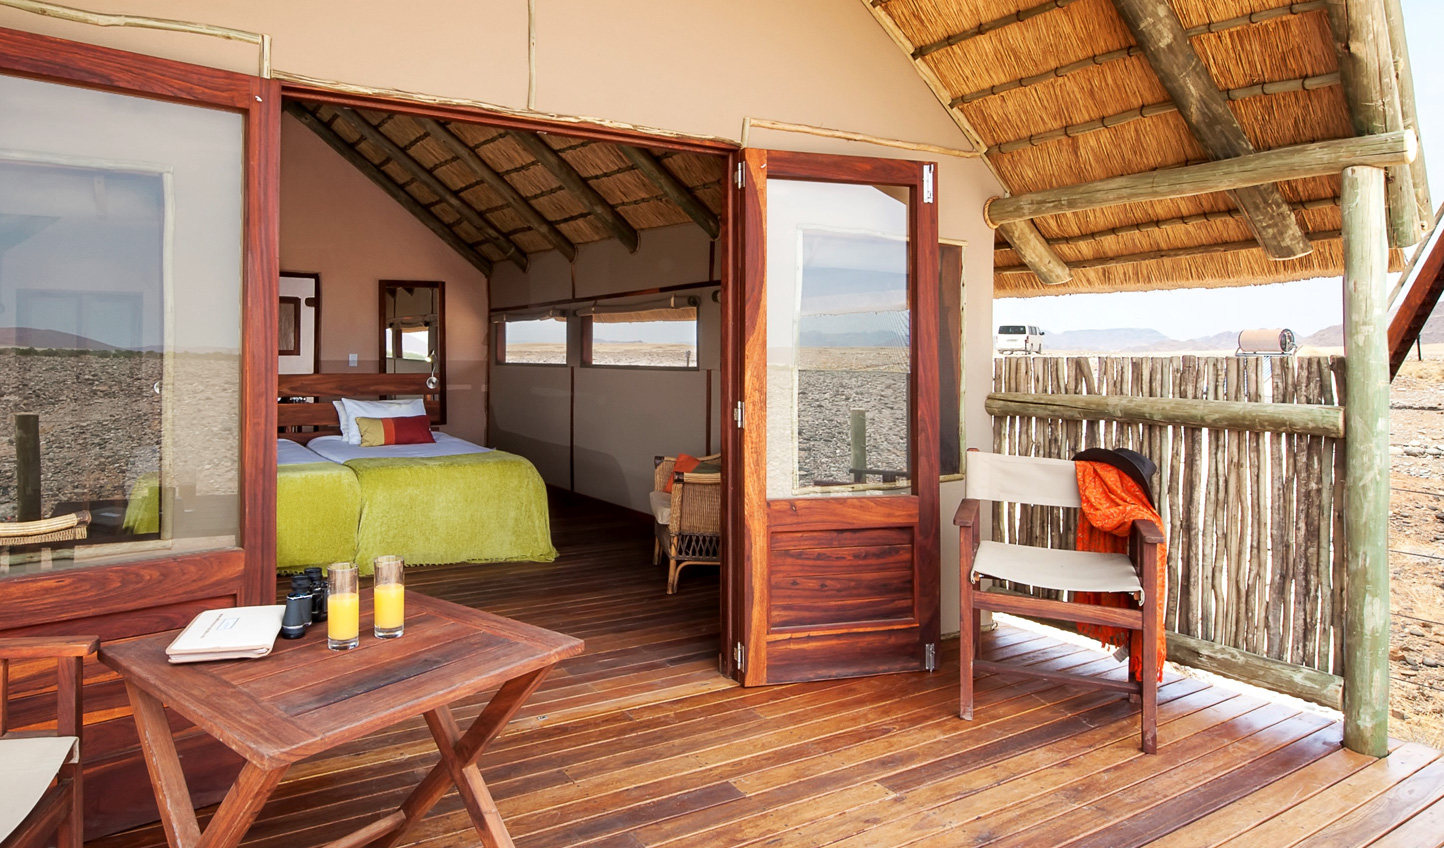 The individual chalets at Kulala Desert Lodge nestle into their surroundings